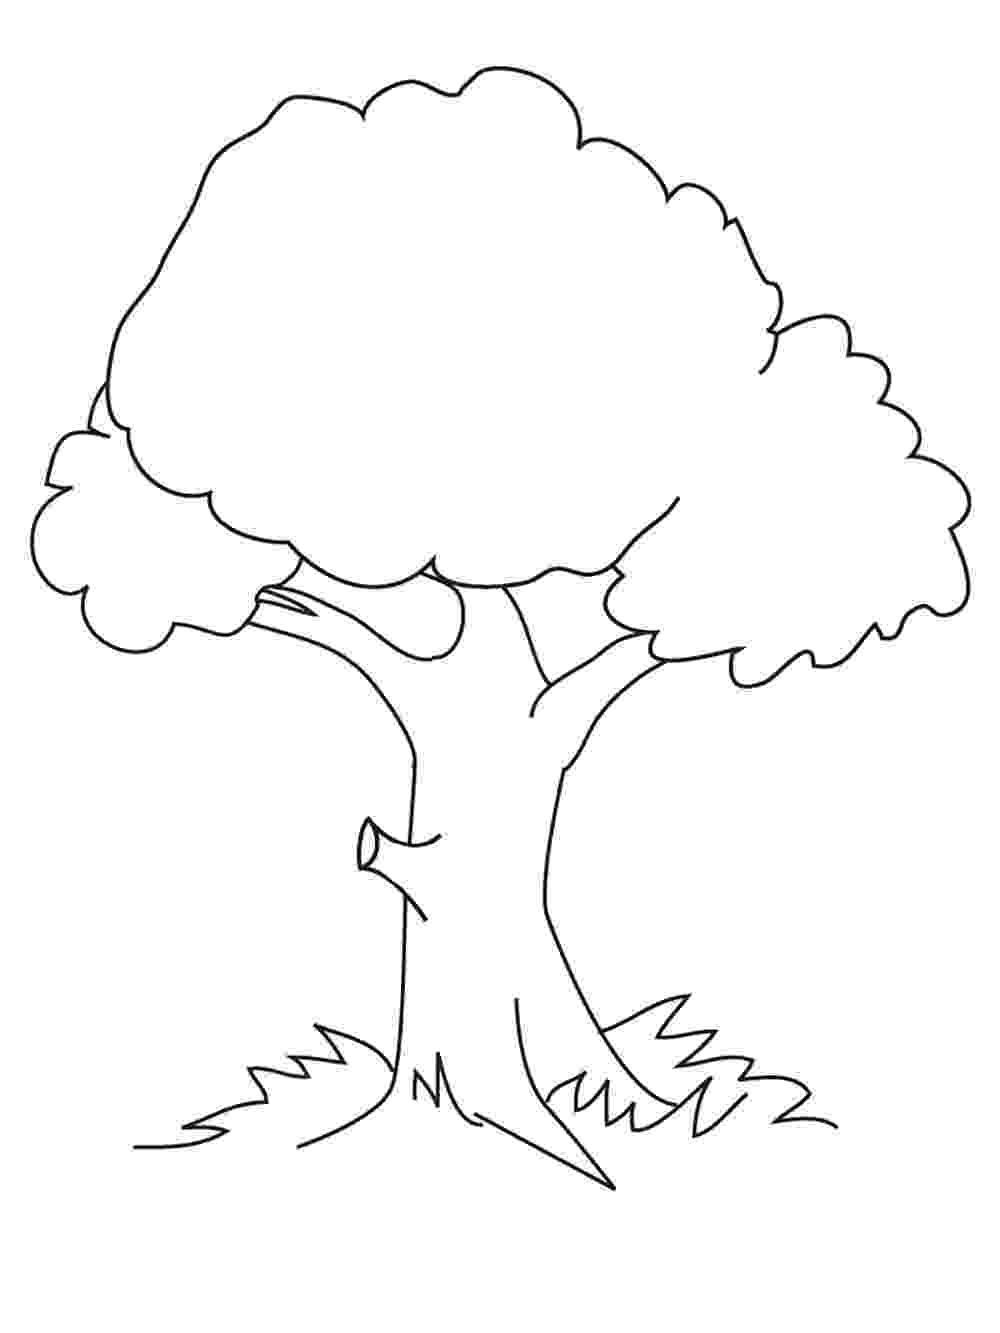 tree coloring pages free printable tree coloring pages for kids pages coloring tree 1 1